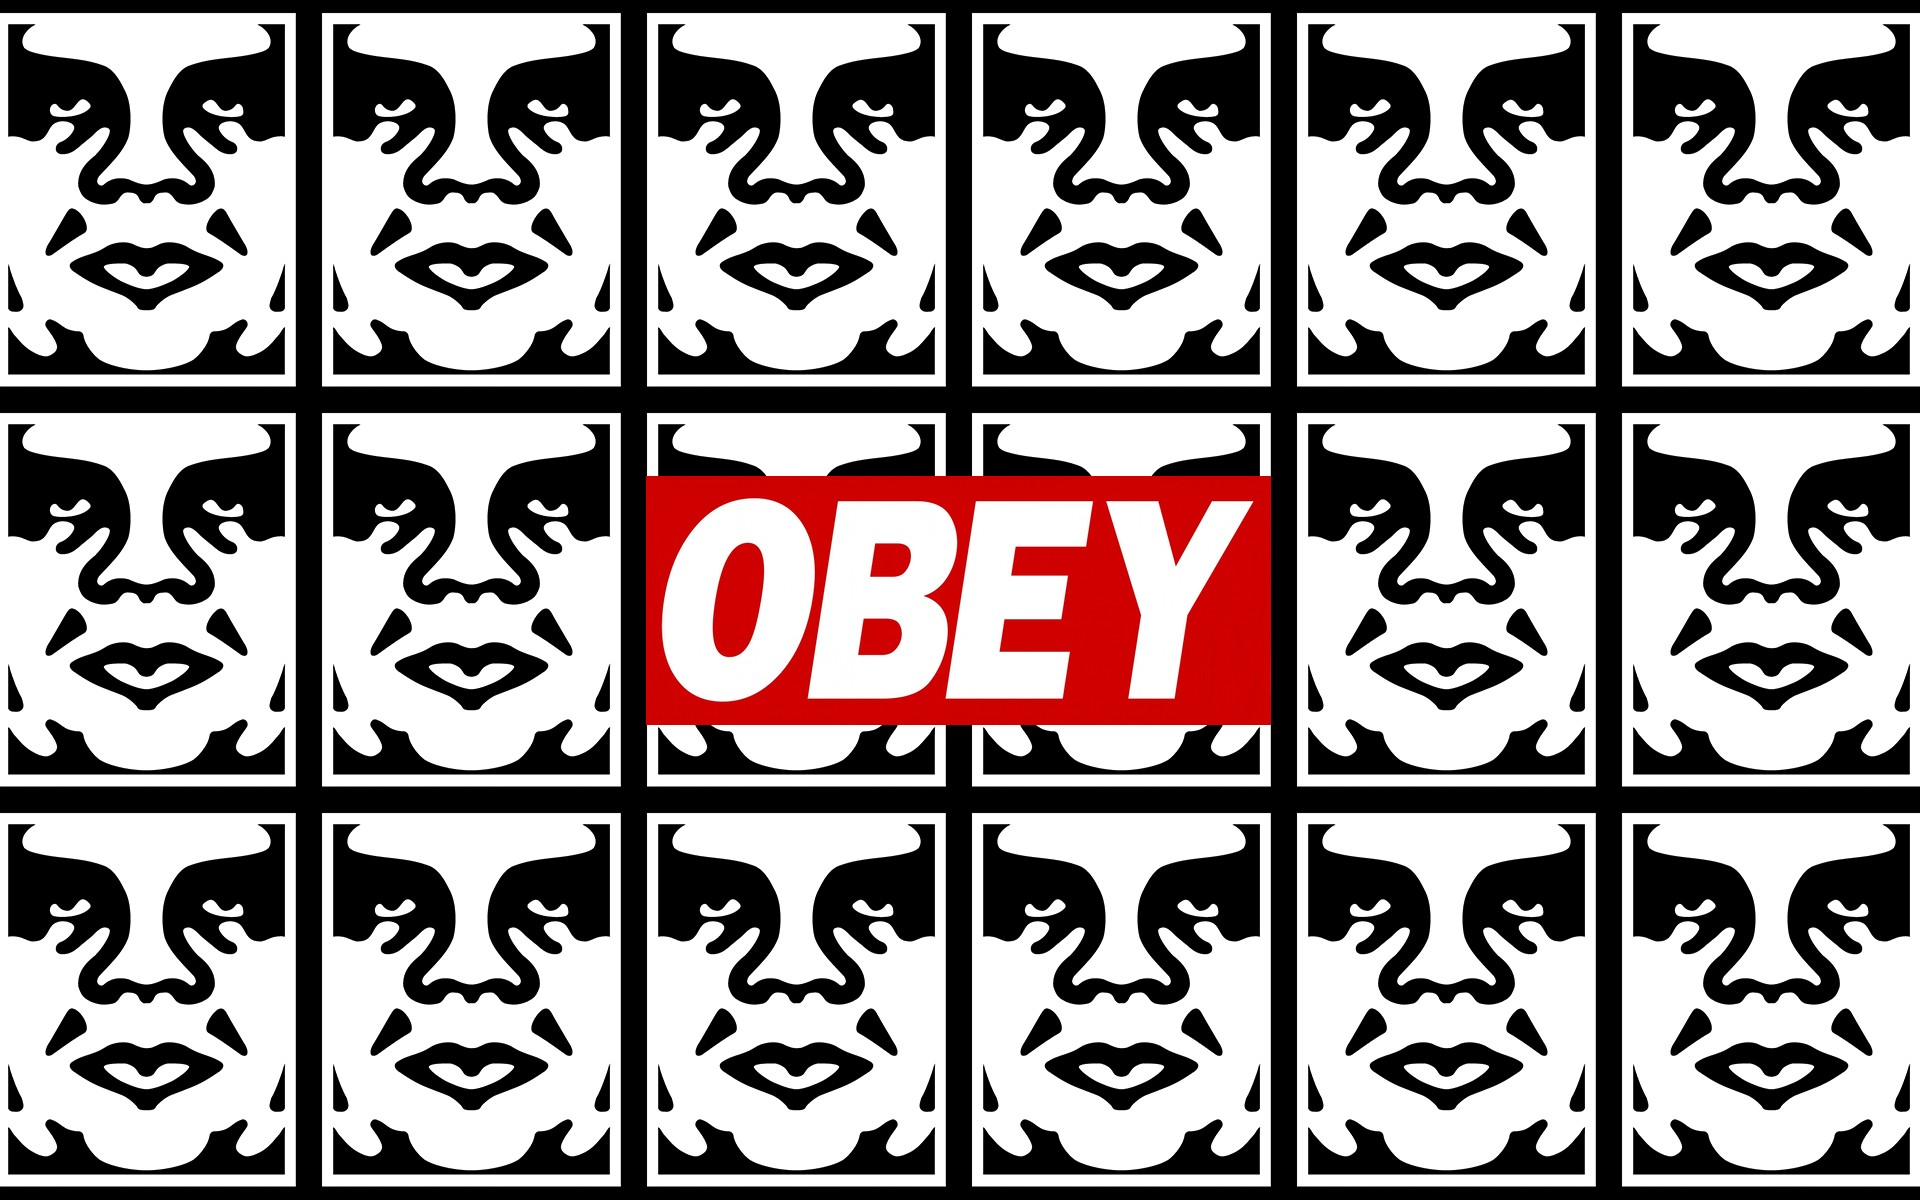 Obey graffiti stencils anarchy humor texts dark sadic wallpaper 1920x1200